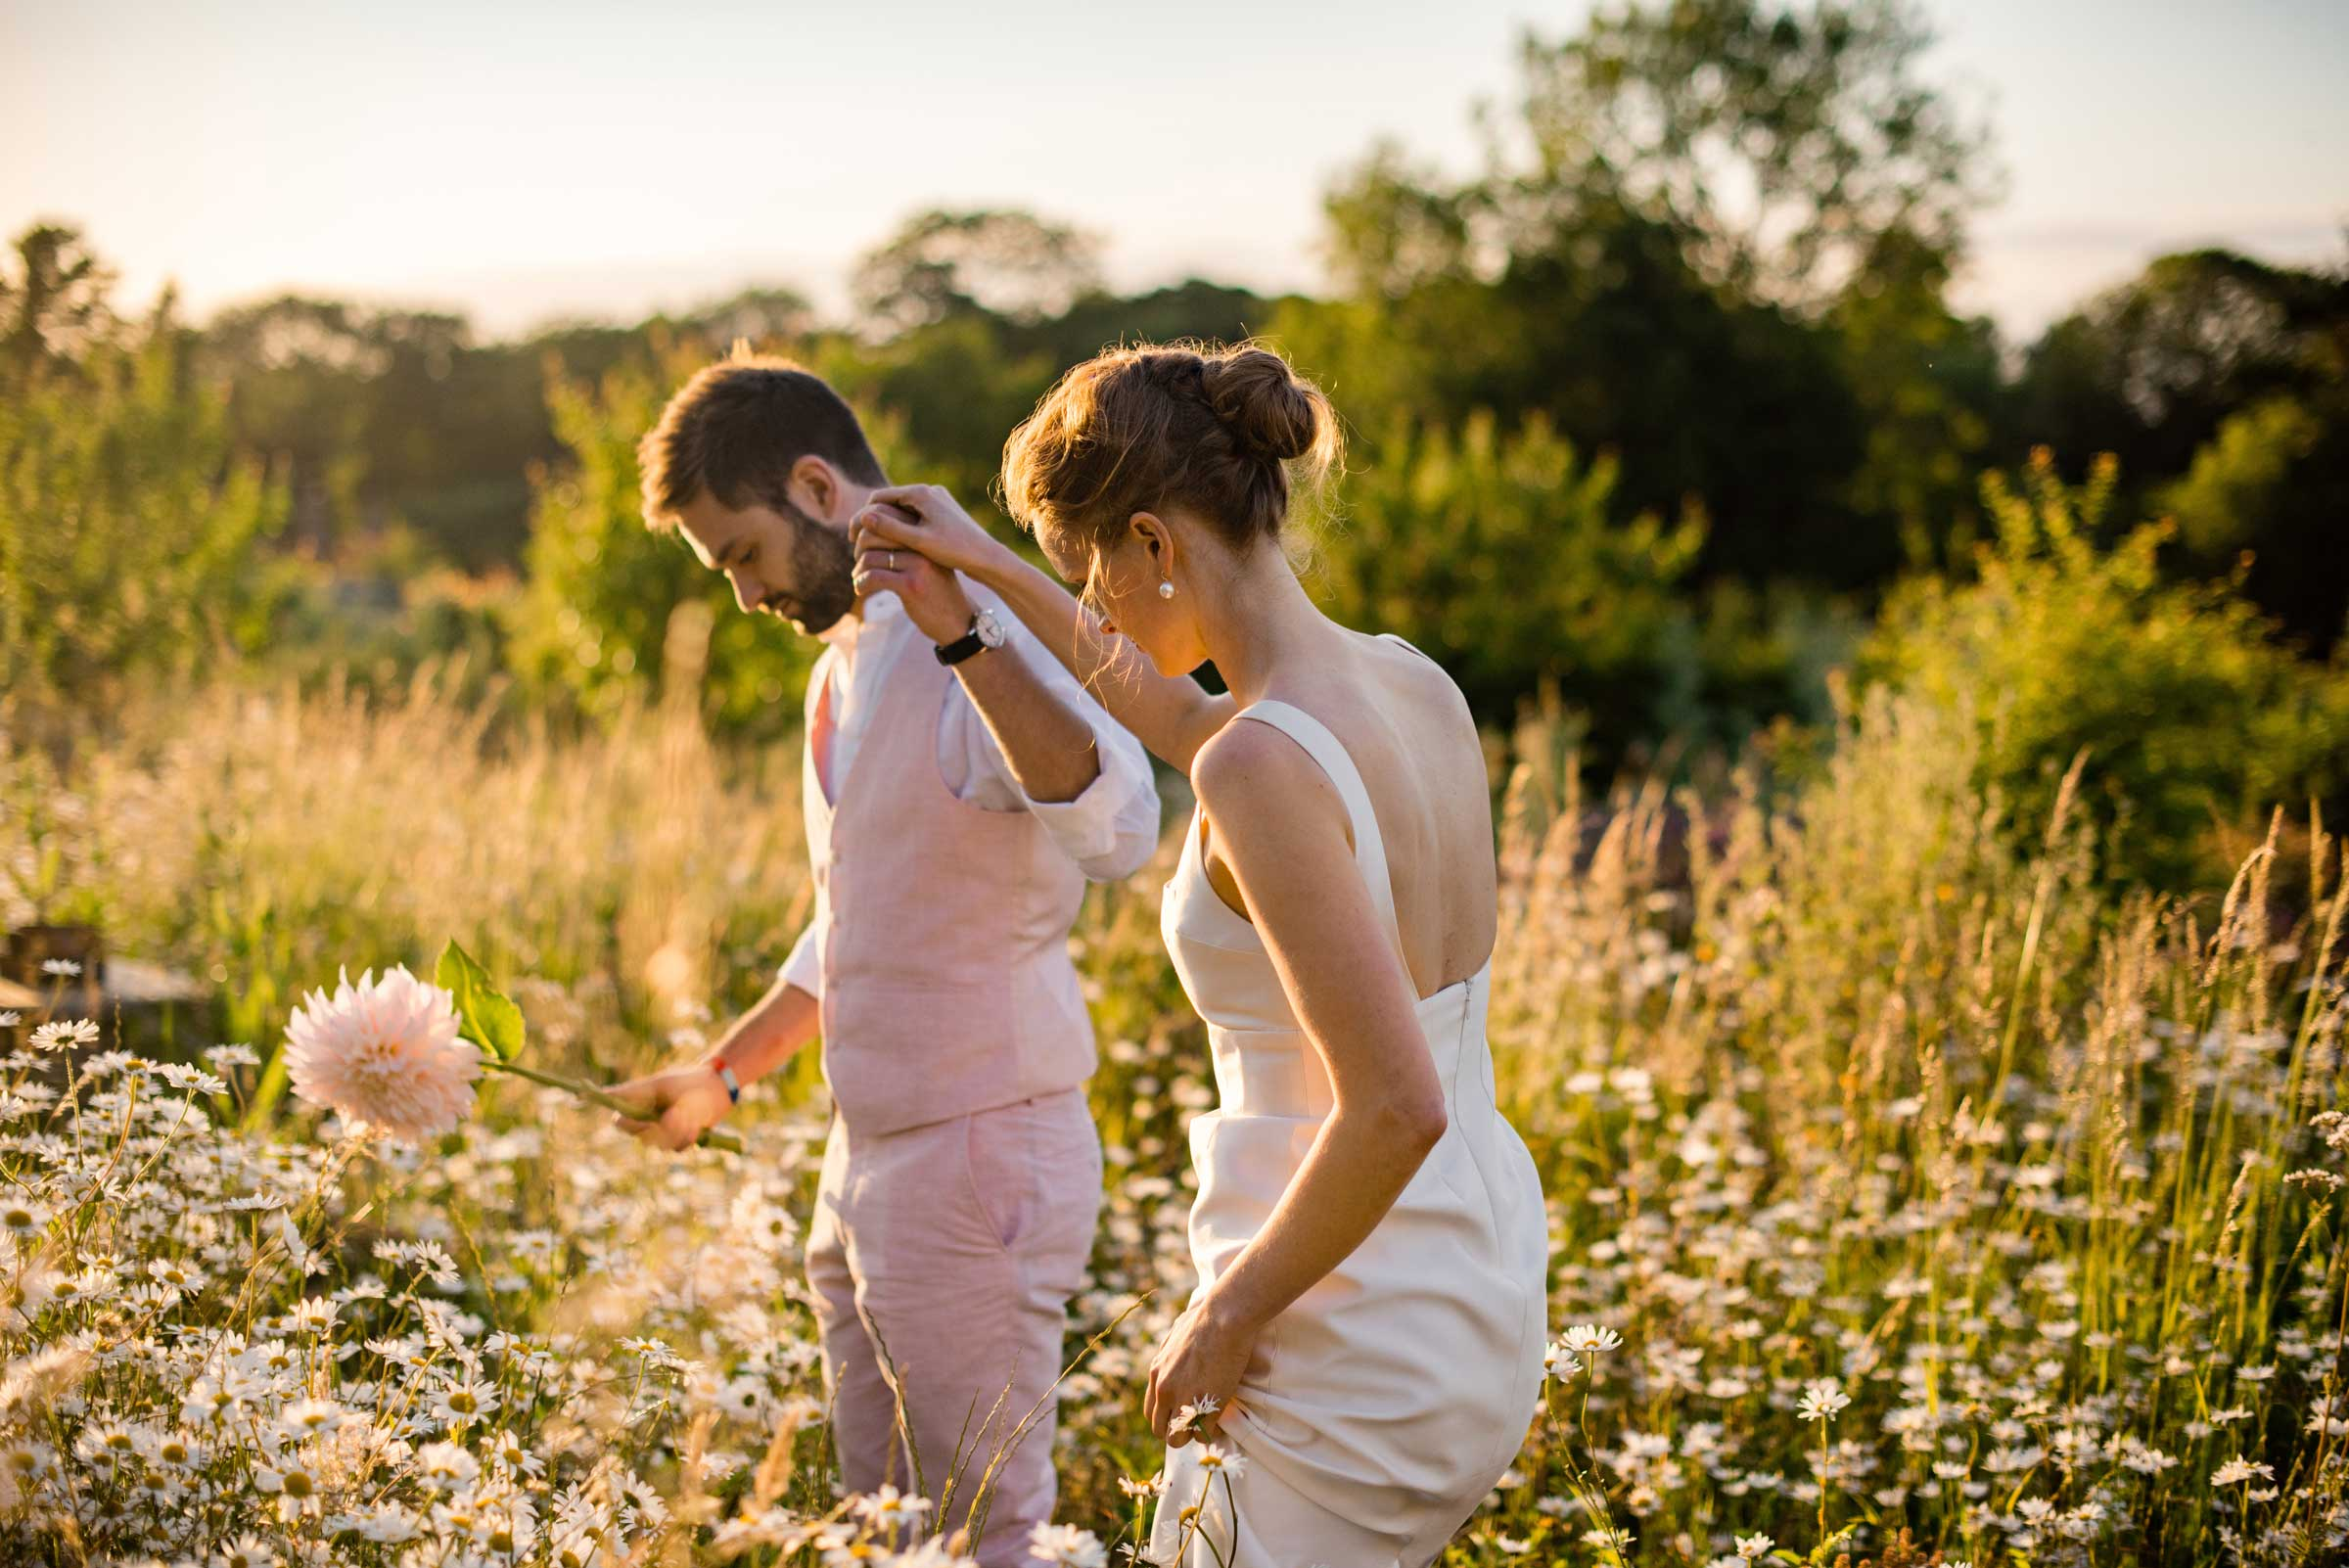 Planning a Wedding – Our Top Tips on Managing Your Wedding Budget